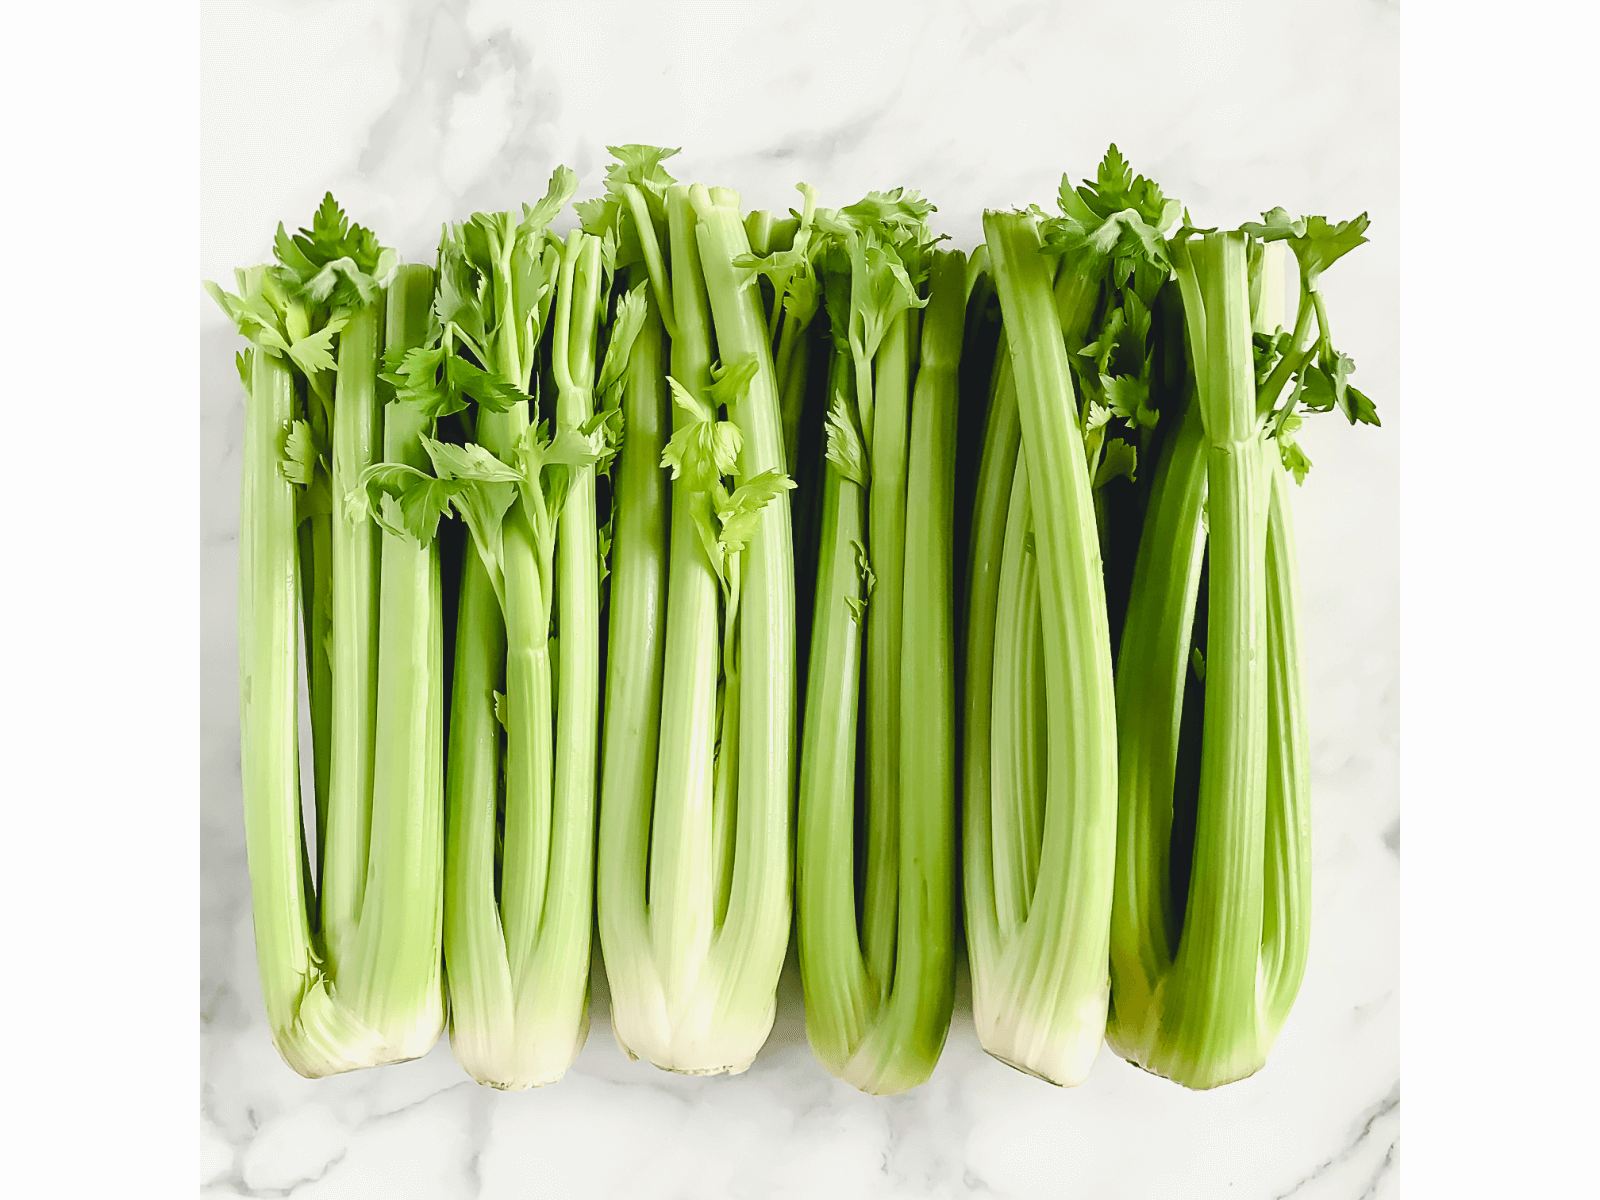 Horizontal image of organic raw celery on a white marble surface